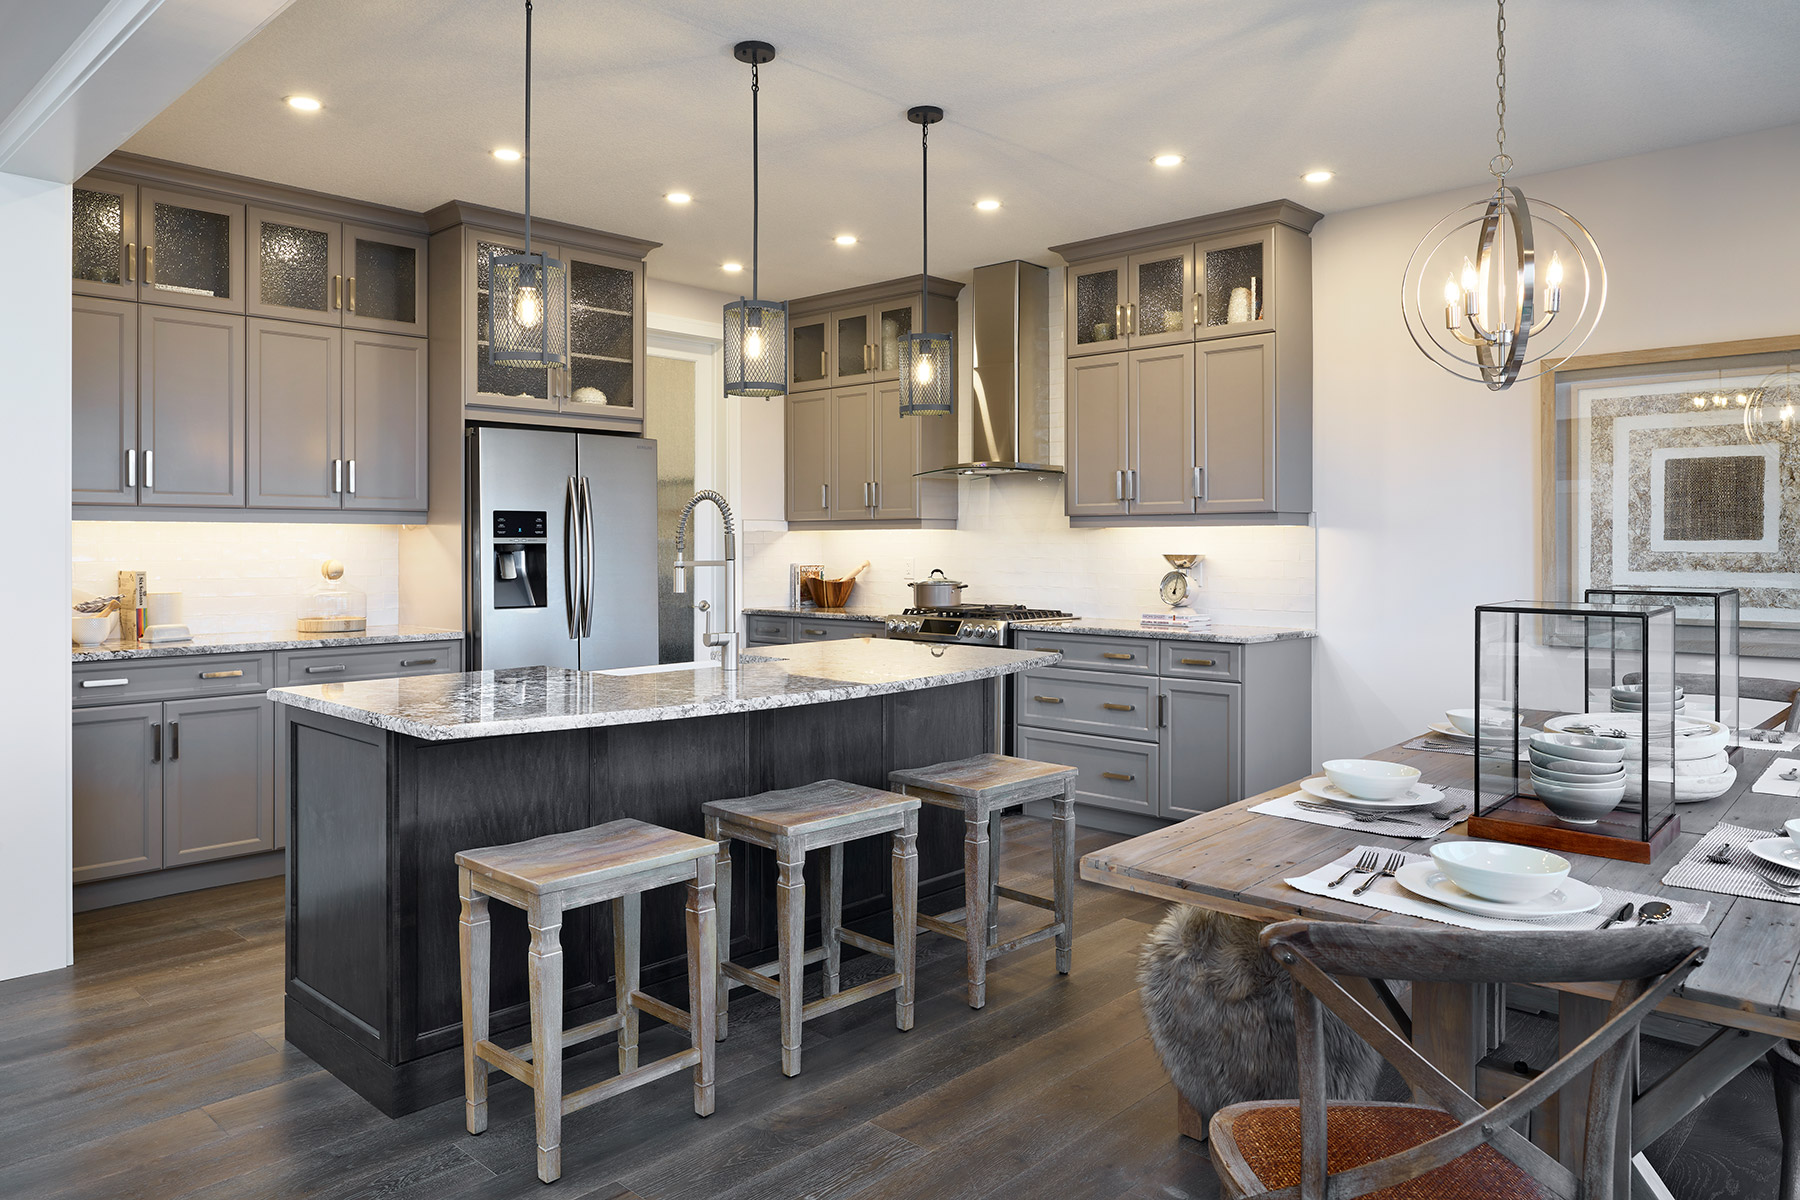 Jade Plan Kitchen at Yorkville in Calgary Alberta by Mattamy Homes